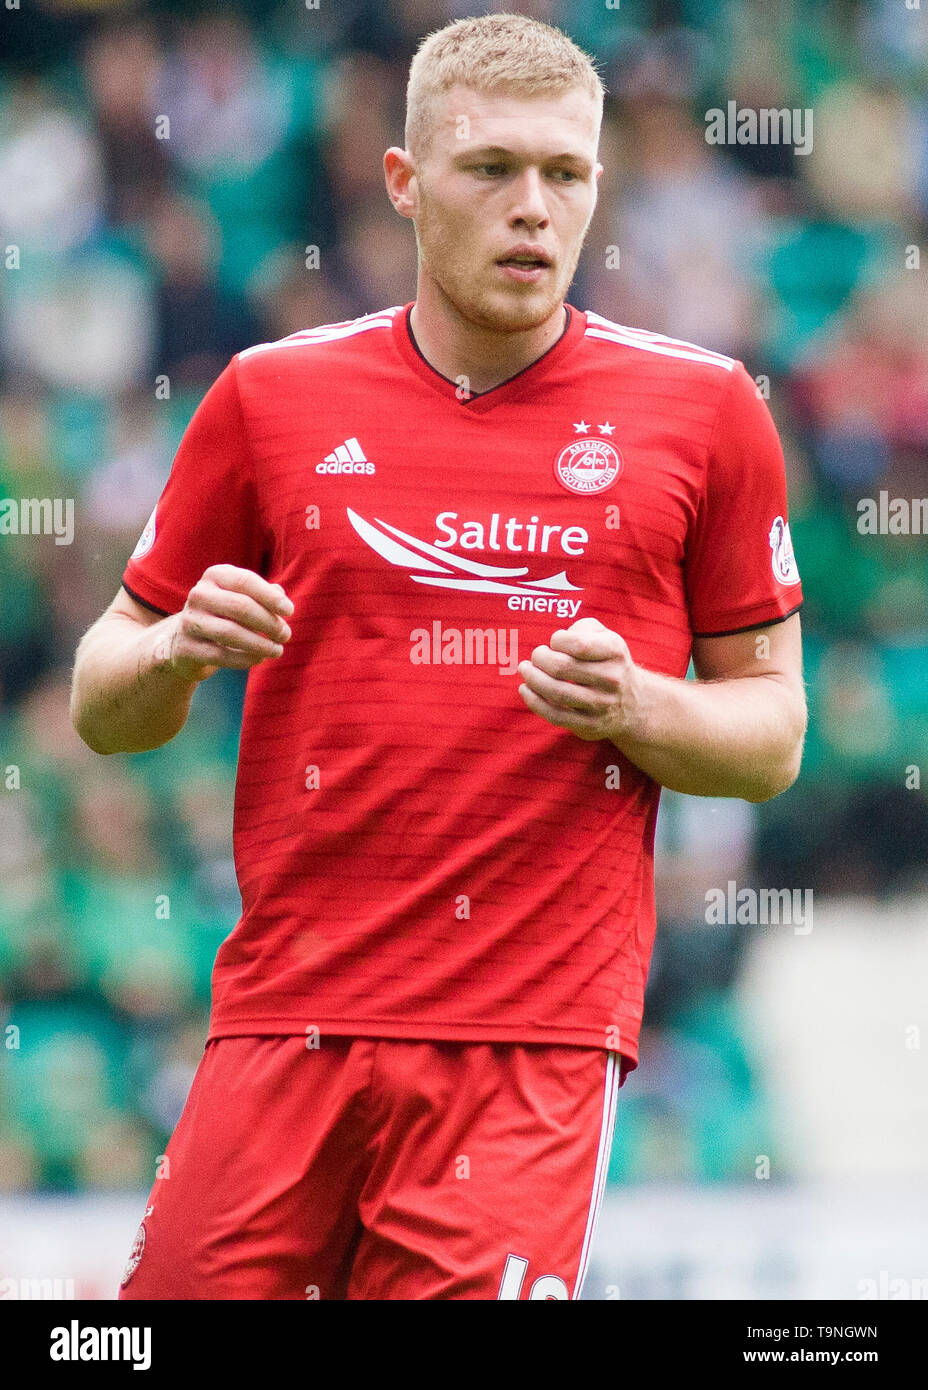 Edinburgh, UK. May 19 2019. Sam Cosgrove of Aberdeen  during the Ladbrokes Premiership match between Hibernian and Aberdeen at Easter Road on May 19 2019 in Edinbugh, UK. Editorial use only, licence required for commercial use. No use in Betting, games or a single club/league/player publication. Credit: Scottish Borders Media/Alamy Live News Stock Photo